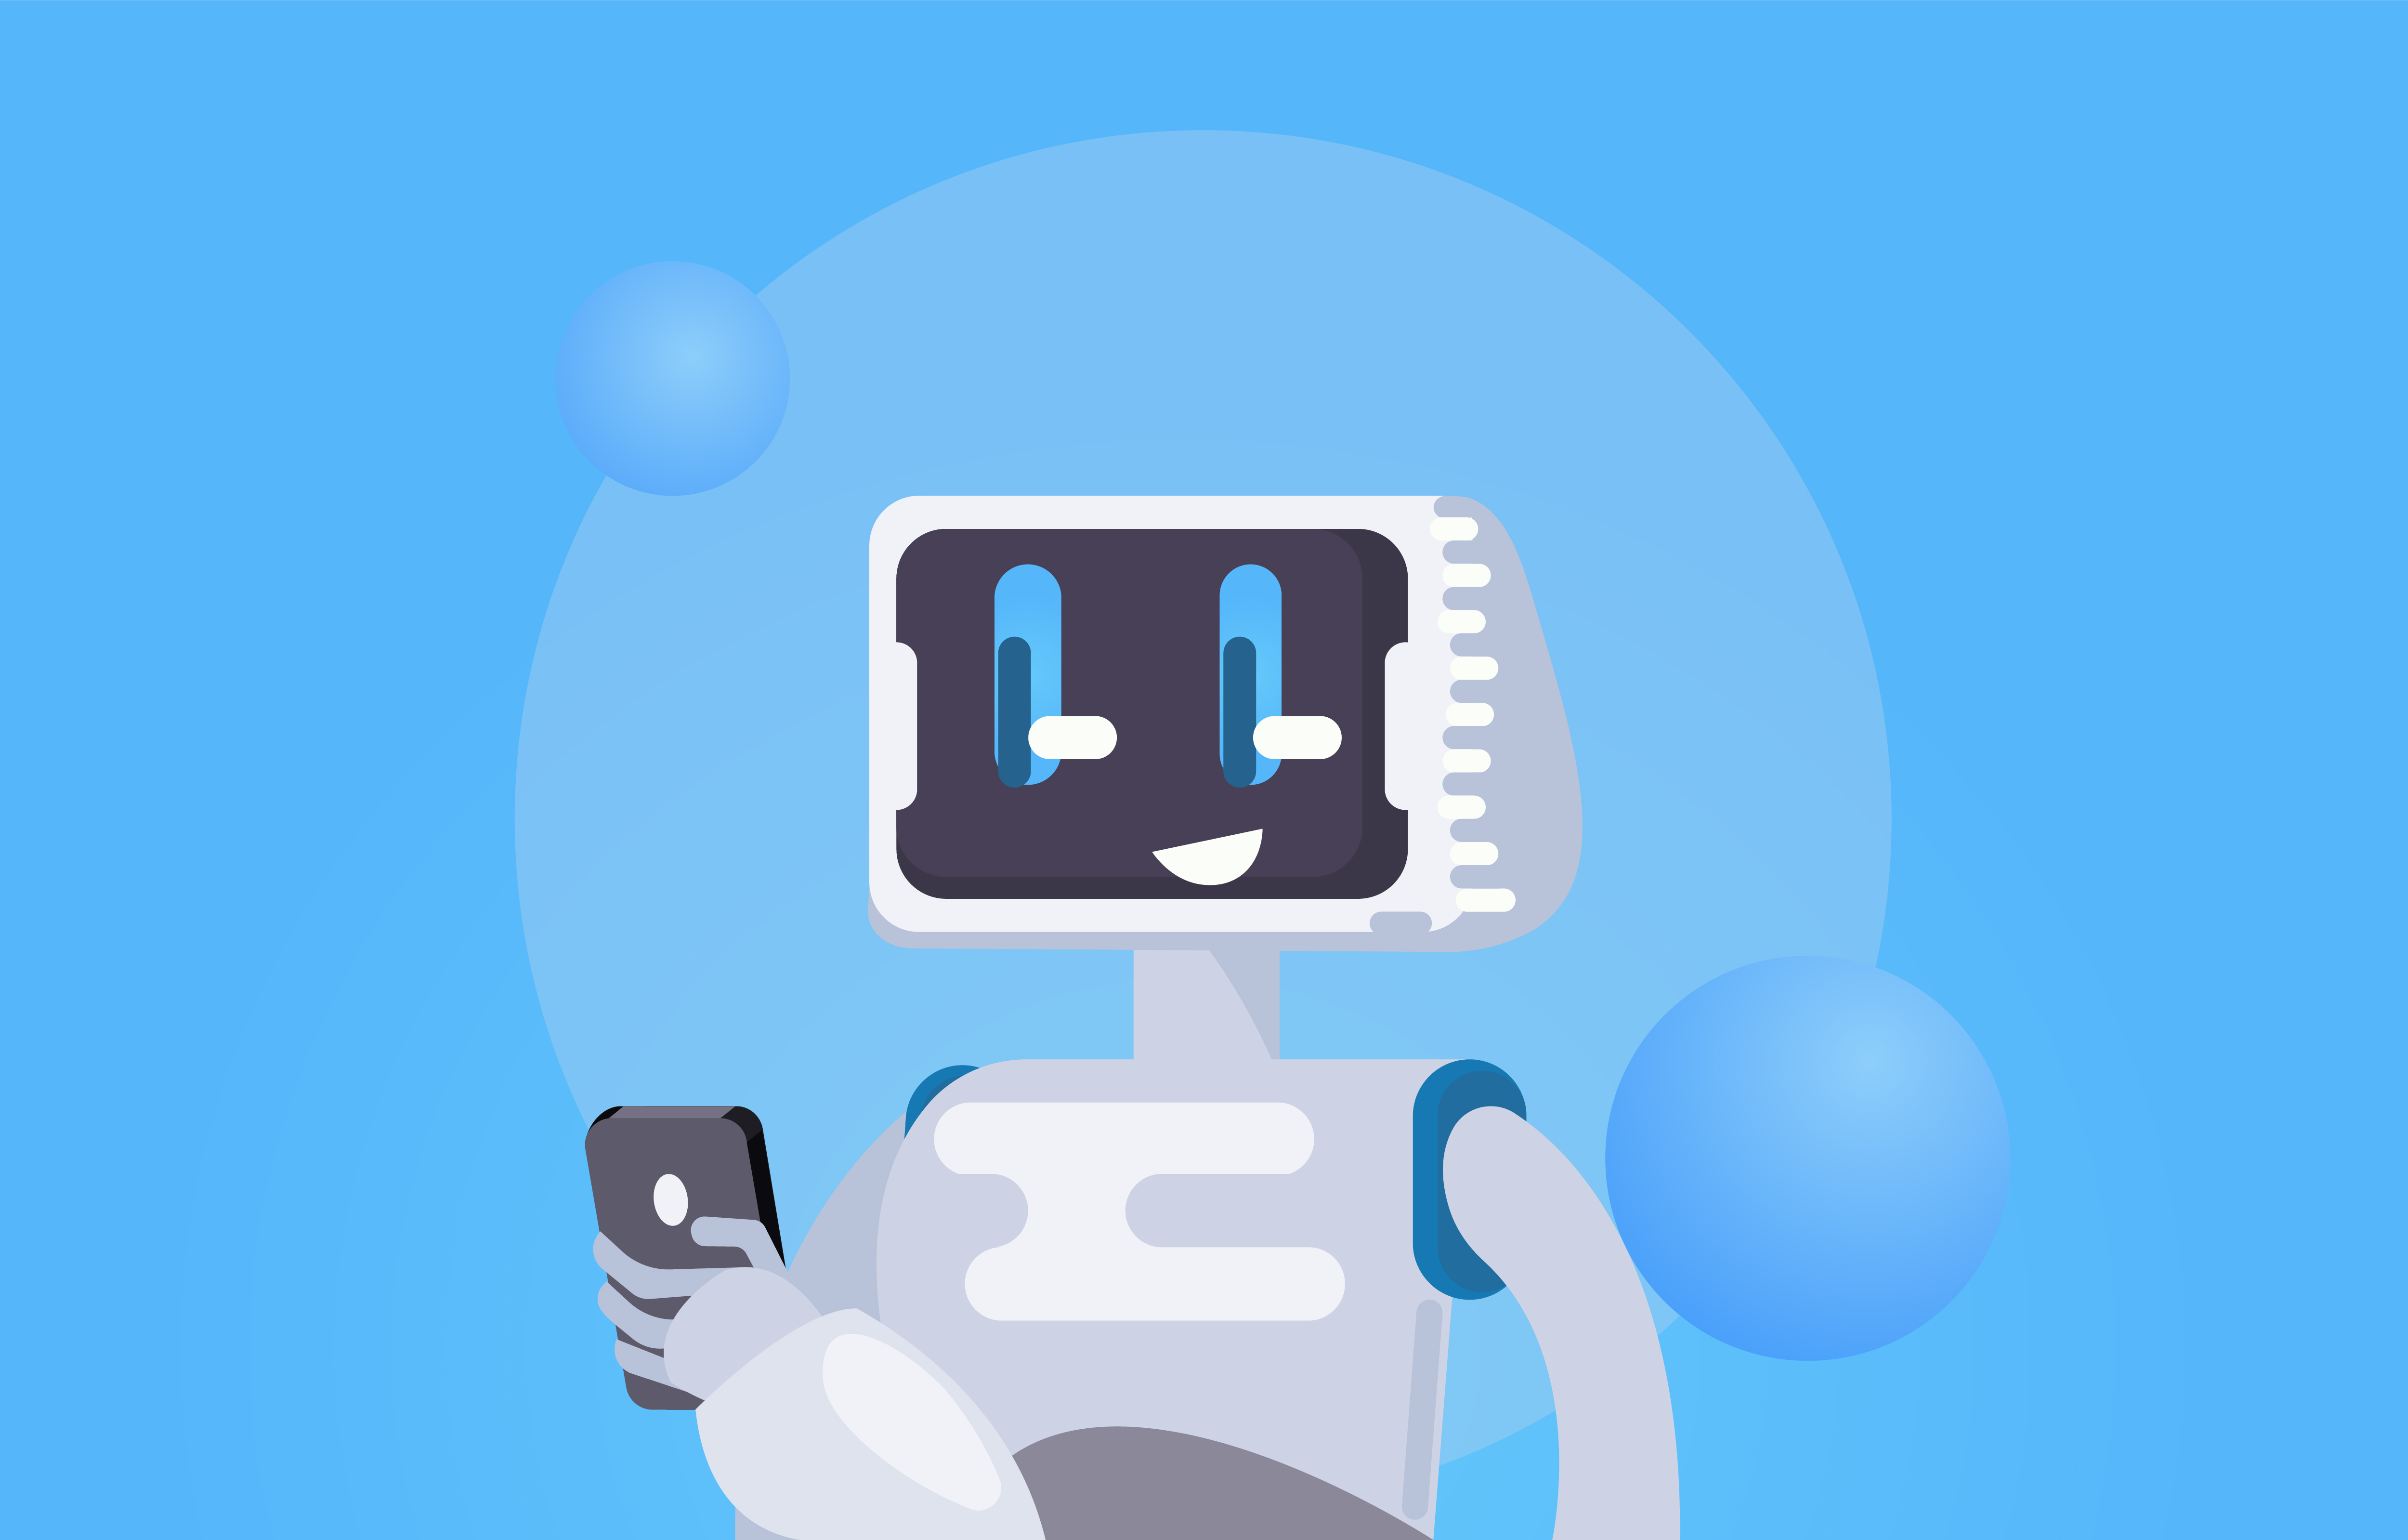 Chat Bot Free Wallpaper. The robot holds the phone